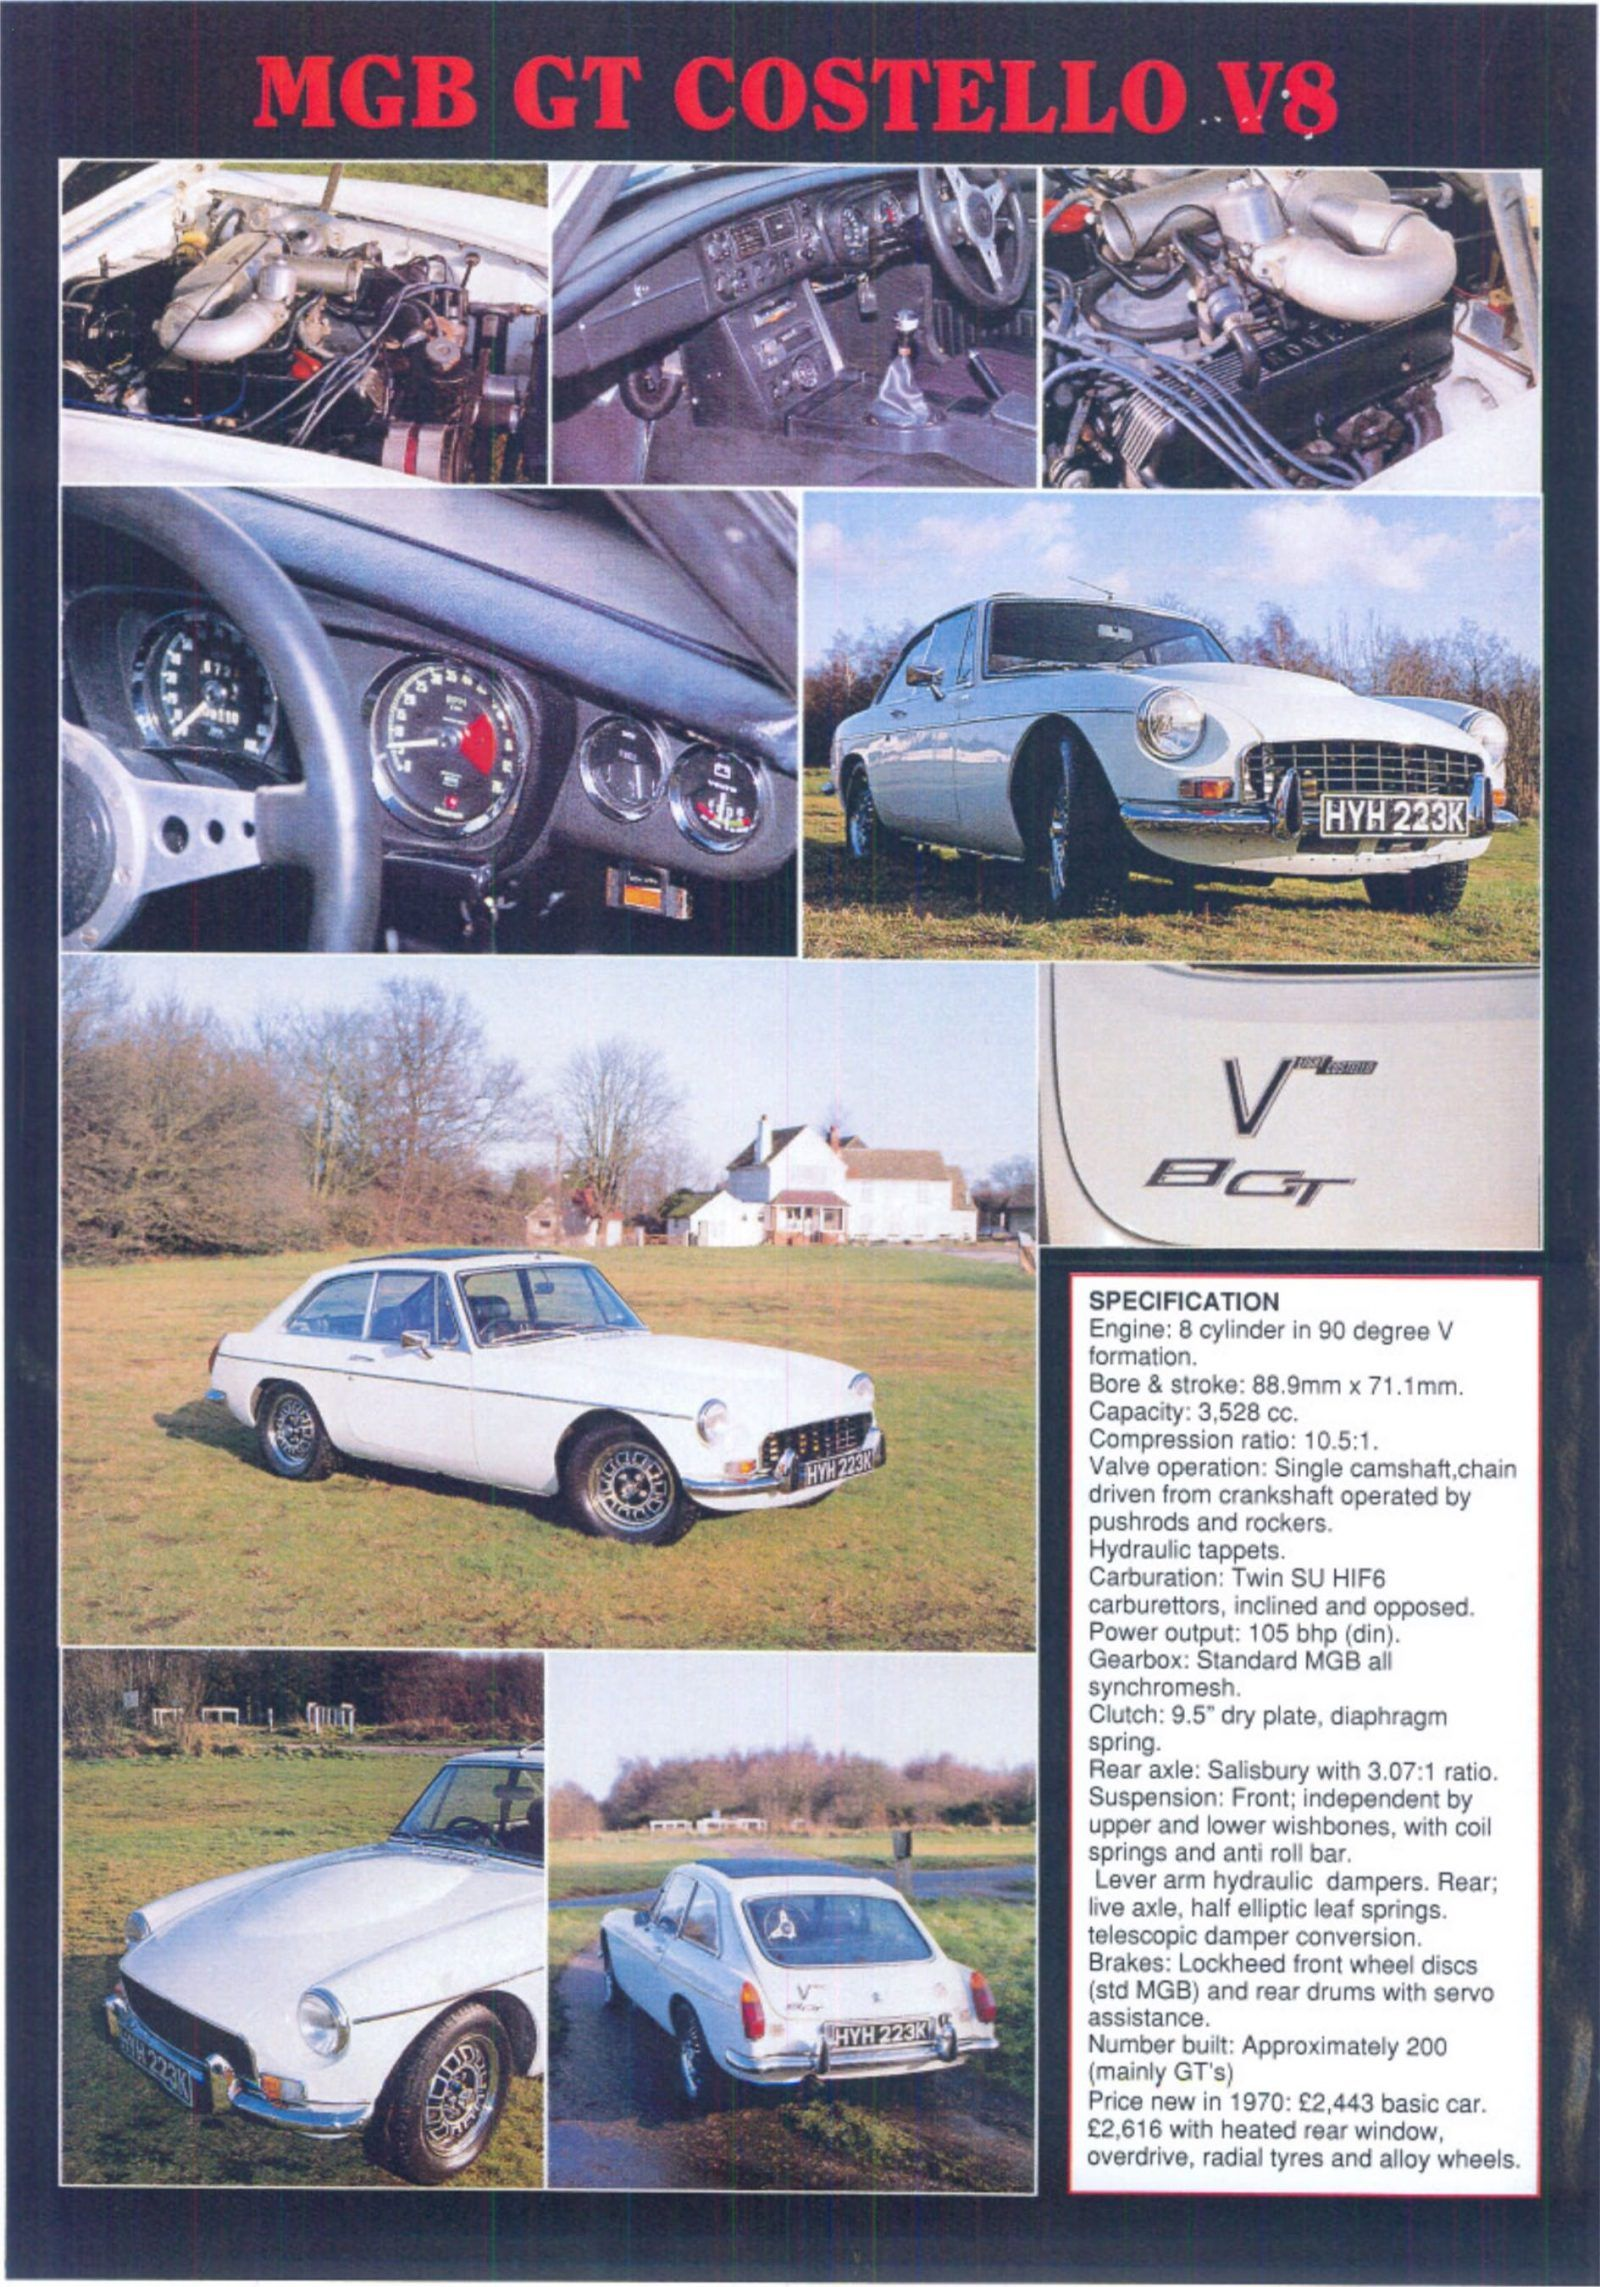 Curbside Classic: 1967 MGB GT - The Truth About Cars